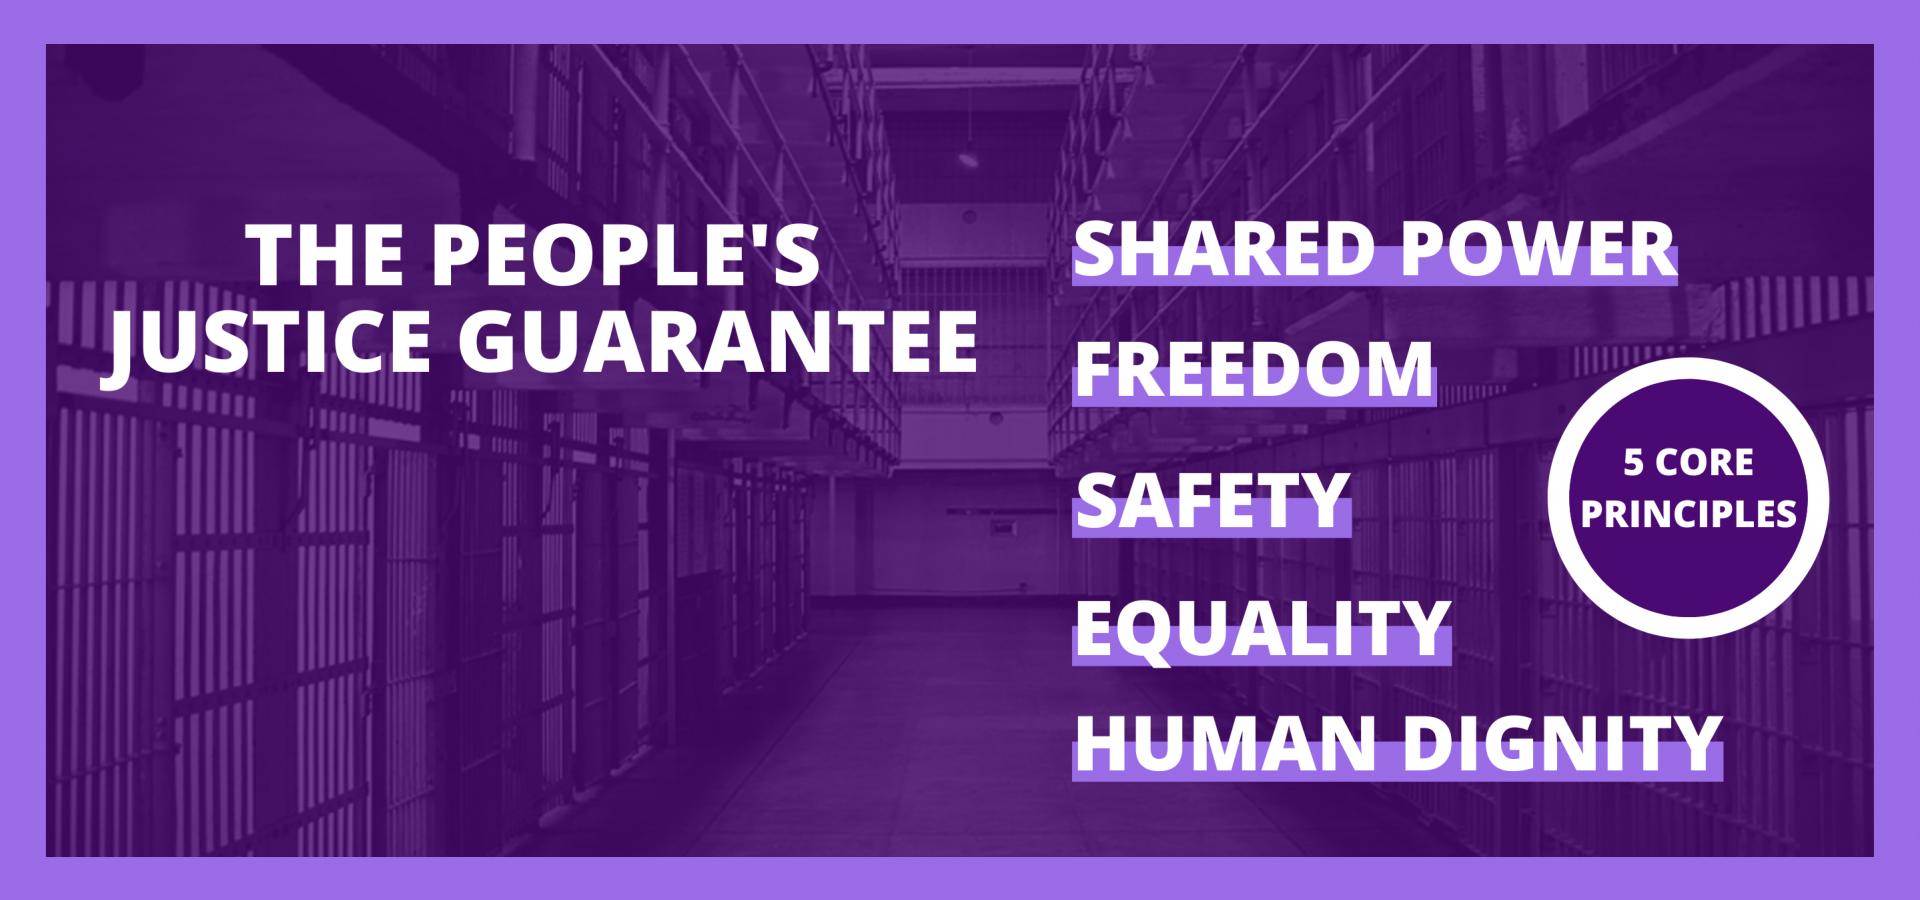 The People's Justice Guarantee